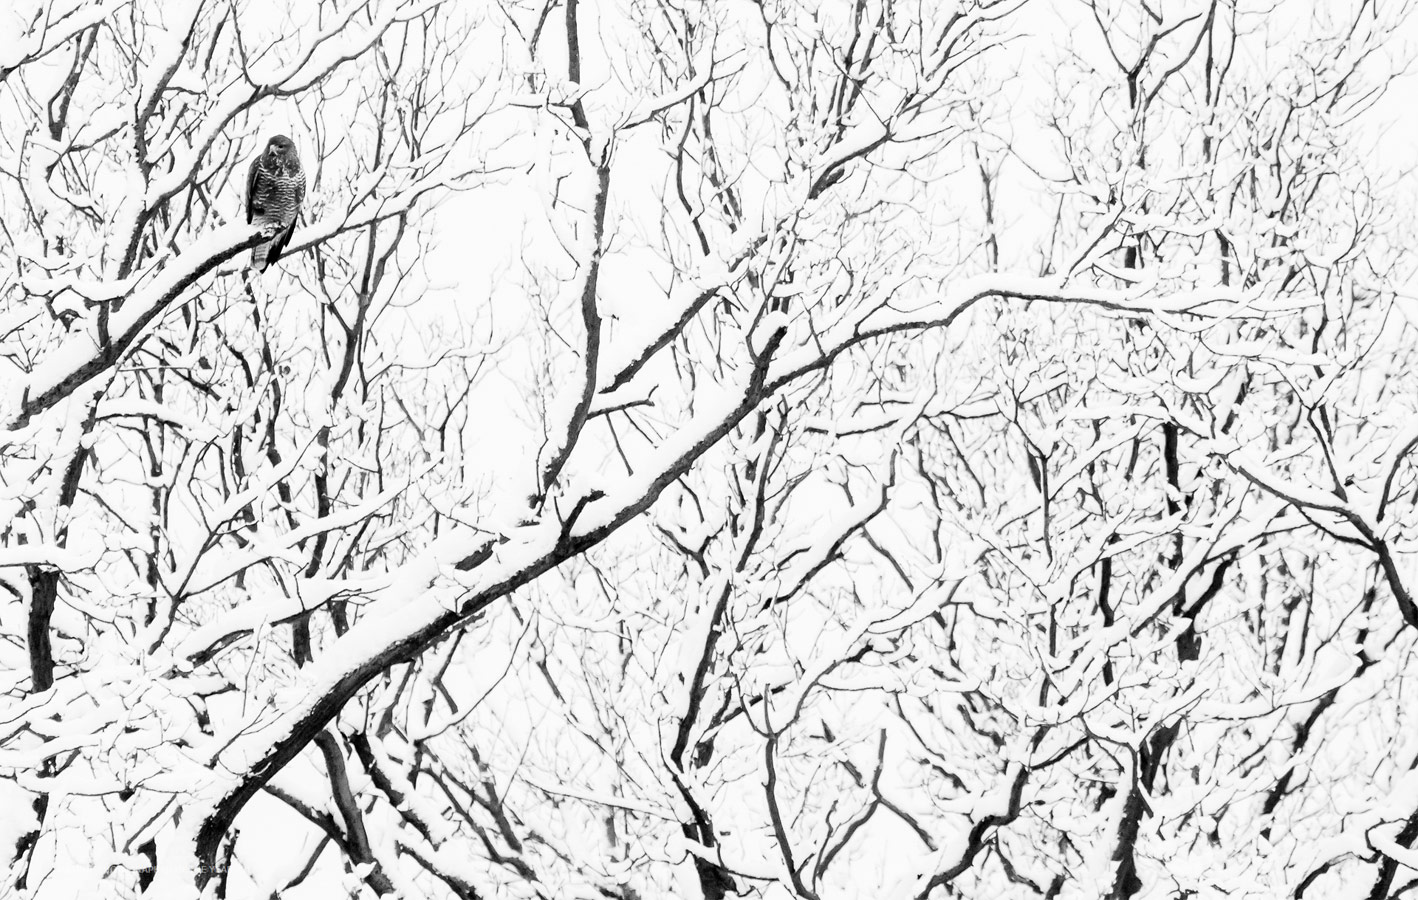 Buzzard, © Rick Van der Kraats, Winner by Category C10 - Youth 10-17 years, Nature Photographer of the Year